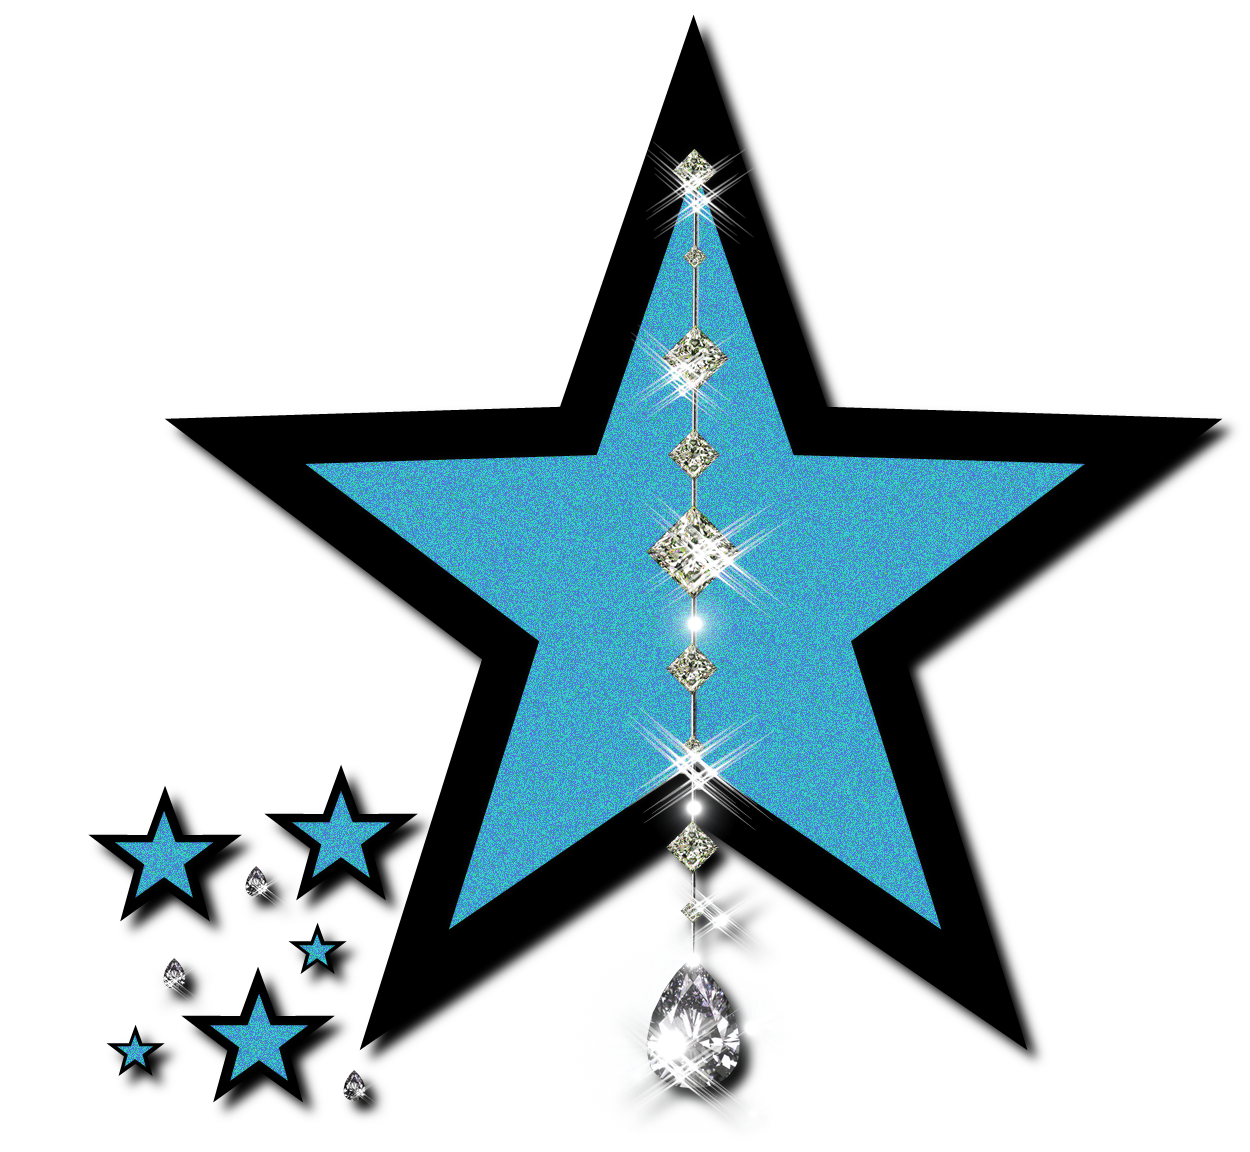 Star clipart black and white clip art library library Shooting Star Clipart at GetDrawings.com | Free for personal use ... clip art library library